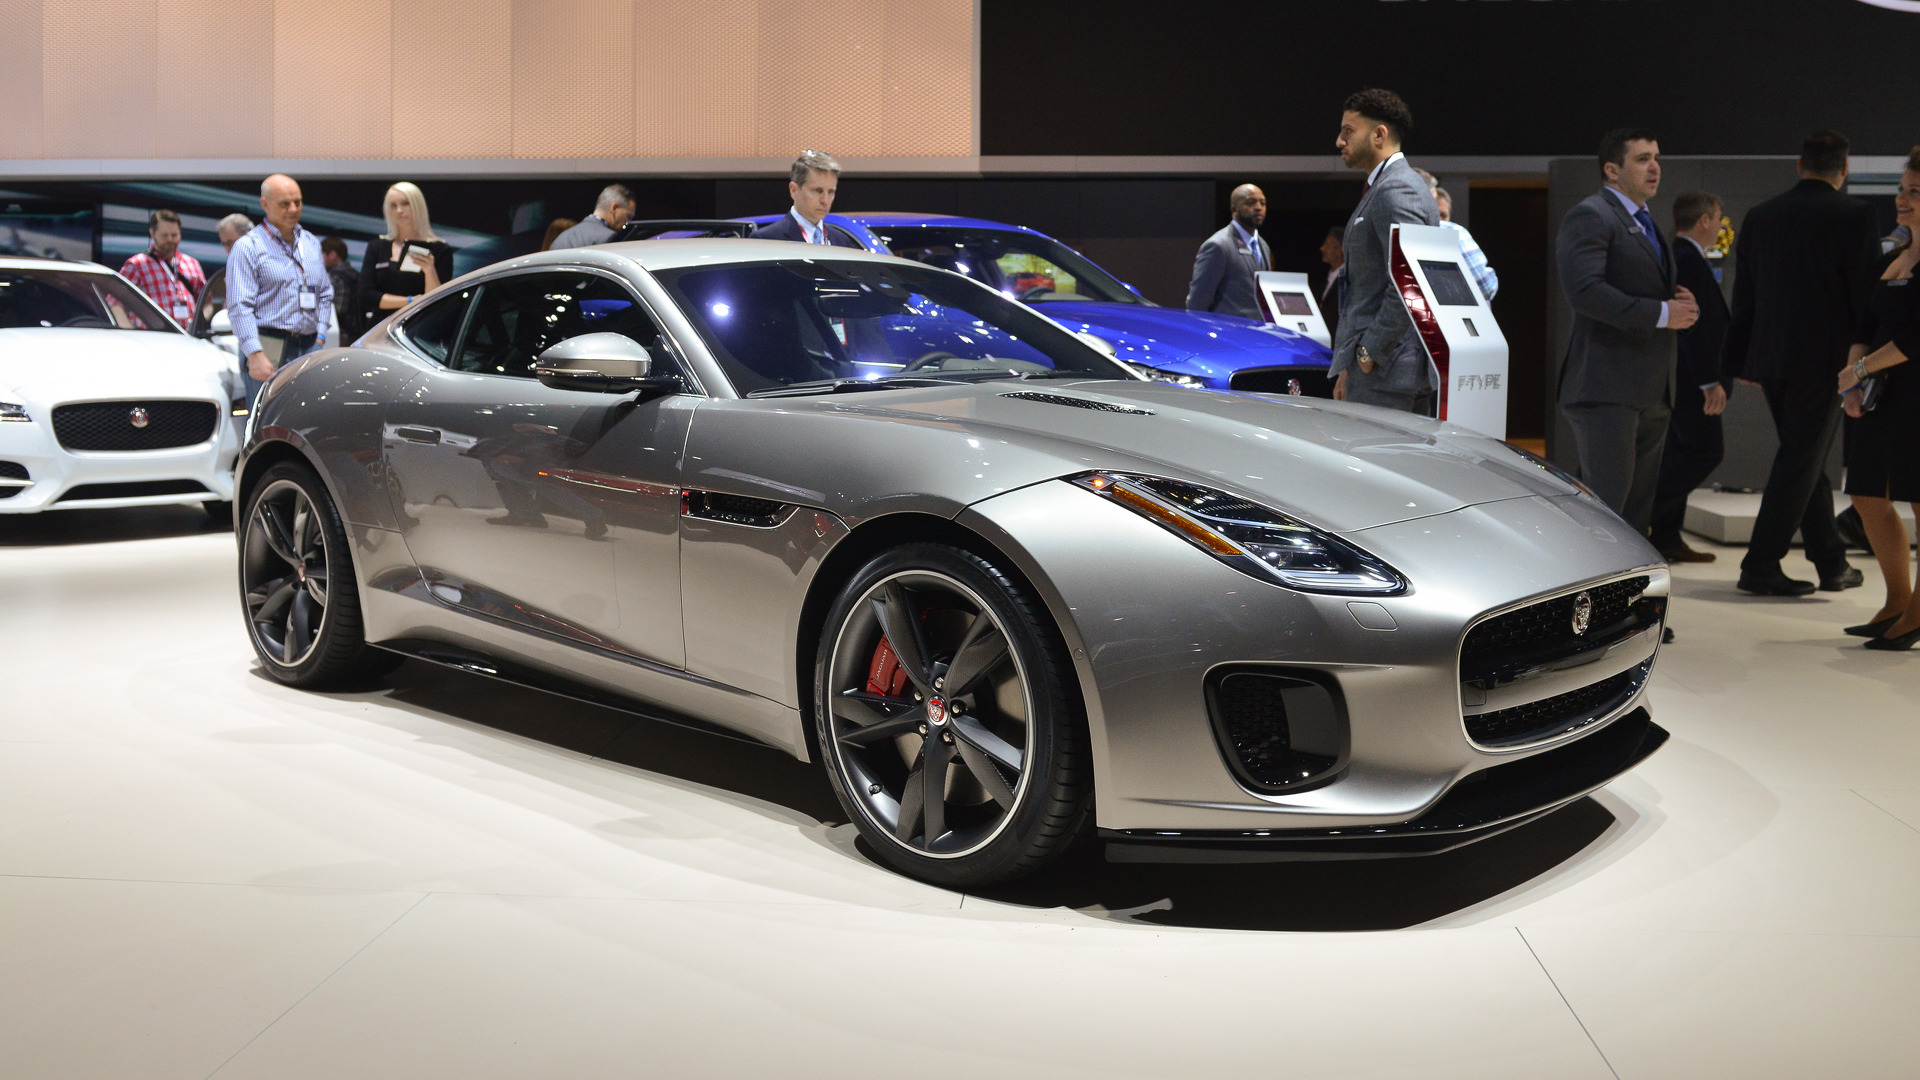 2018 Jaguar Ftype Becomes A Tamer Kitty With New 20